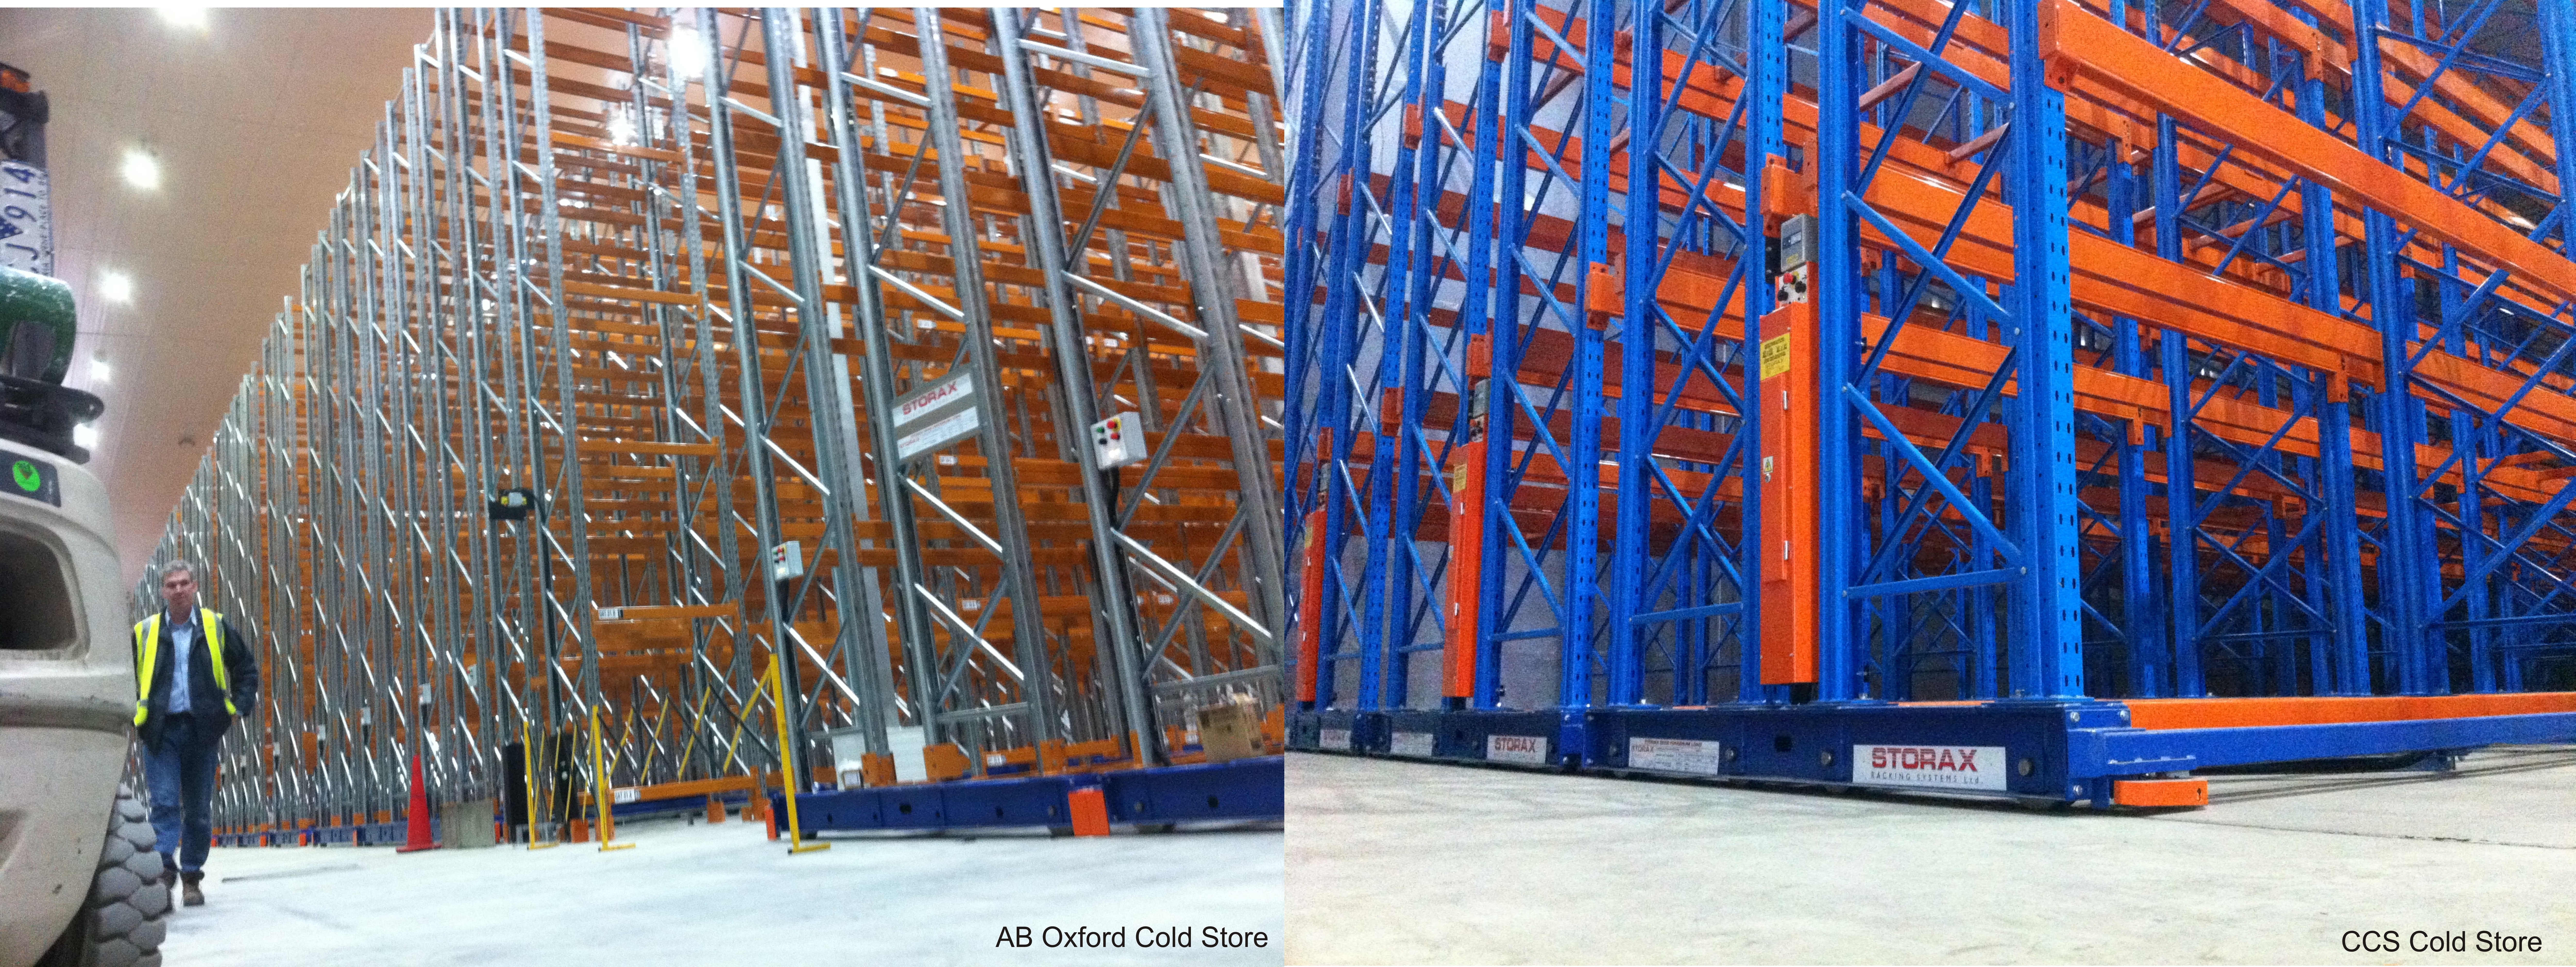 Two of the biggest cold stores in world use BARPRO STORAX mobile racking. u201c & Two of the biggest cold stores in world use STORAX mobile racking